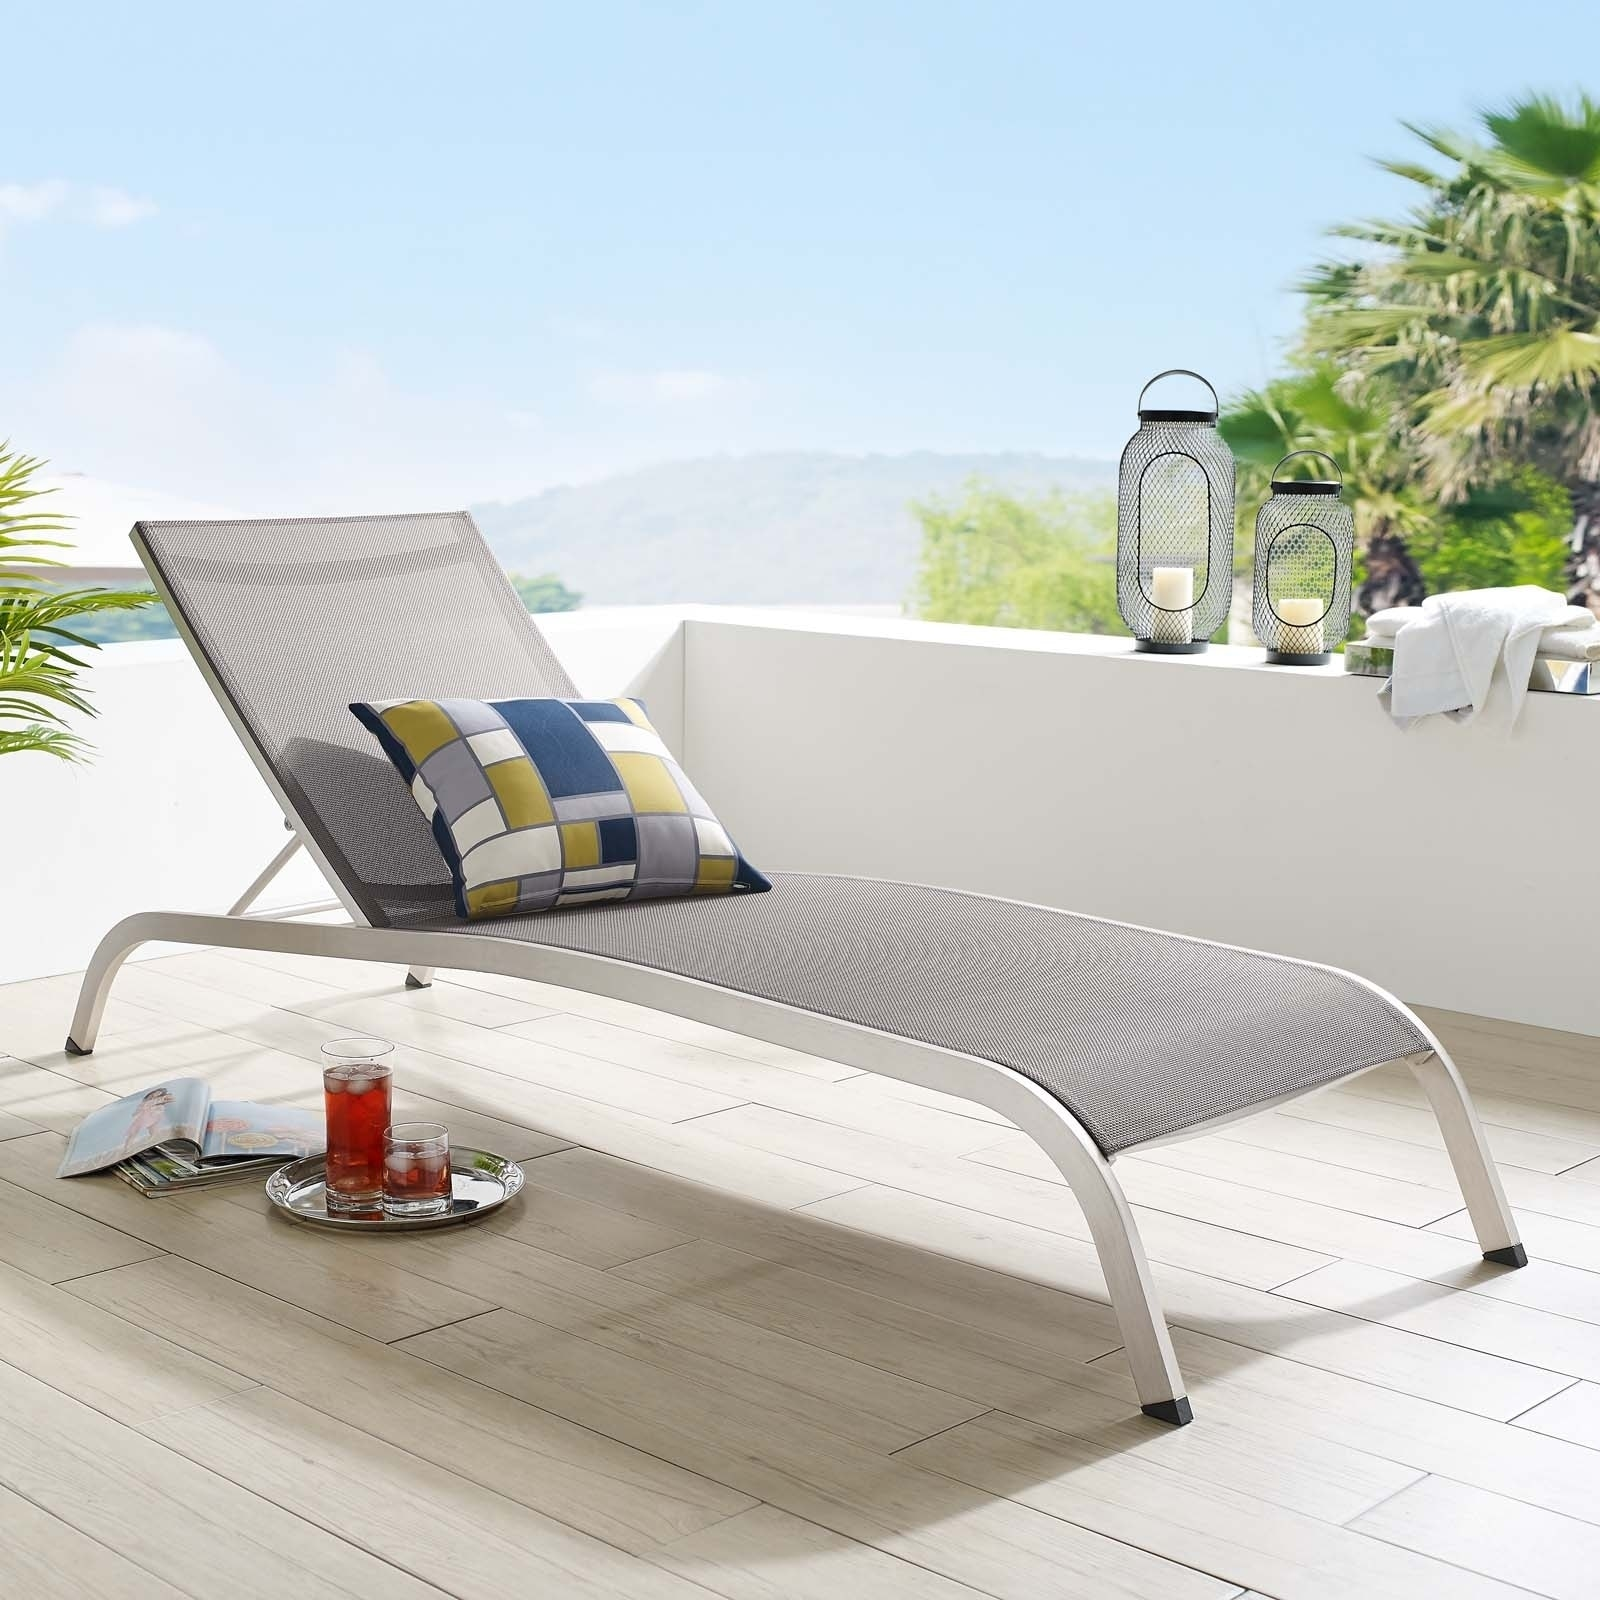 Mesh Chaise Outdoor Patio Lounge Chair